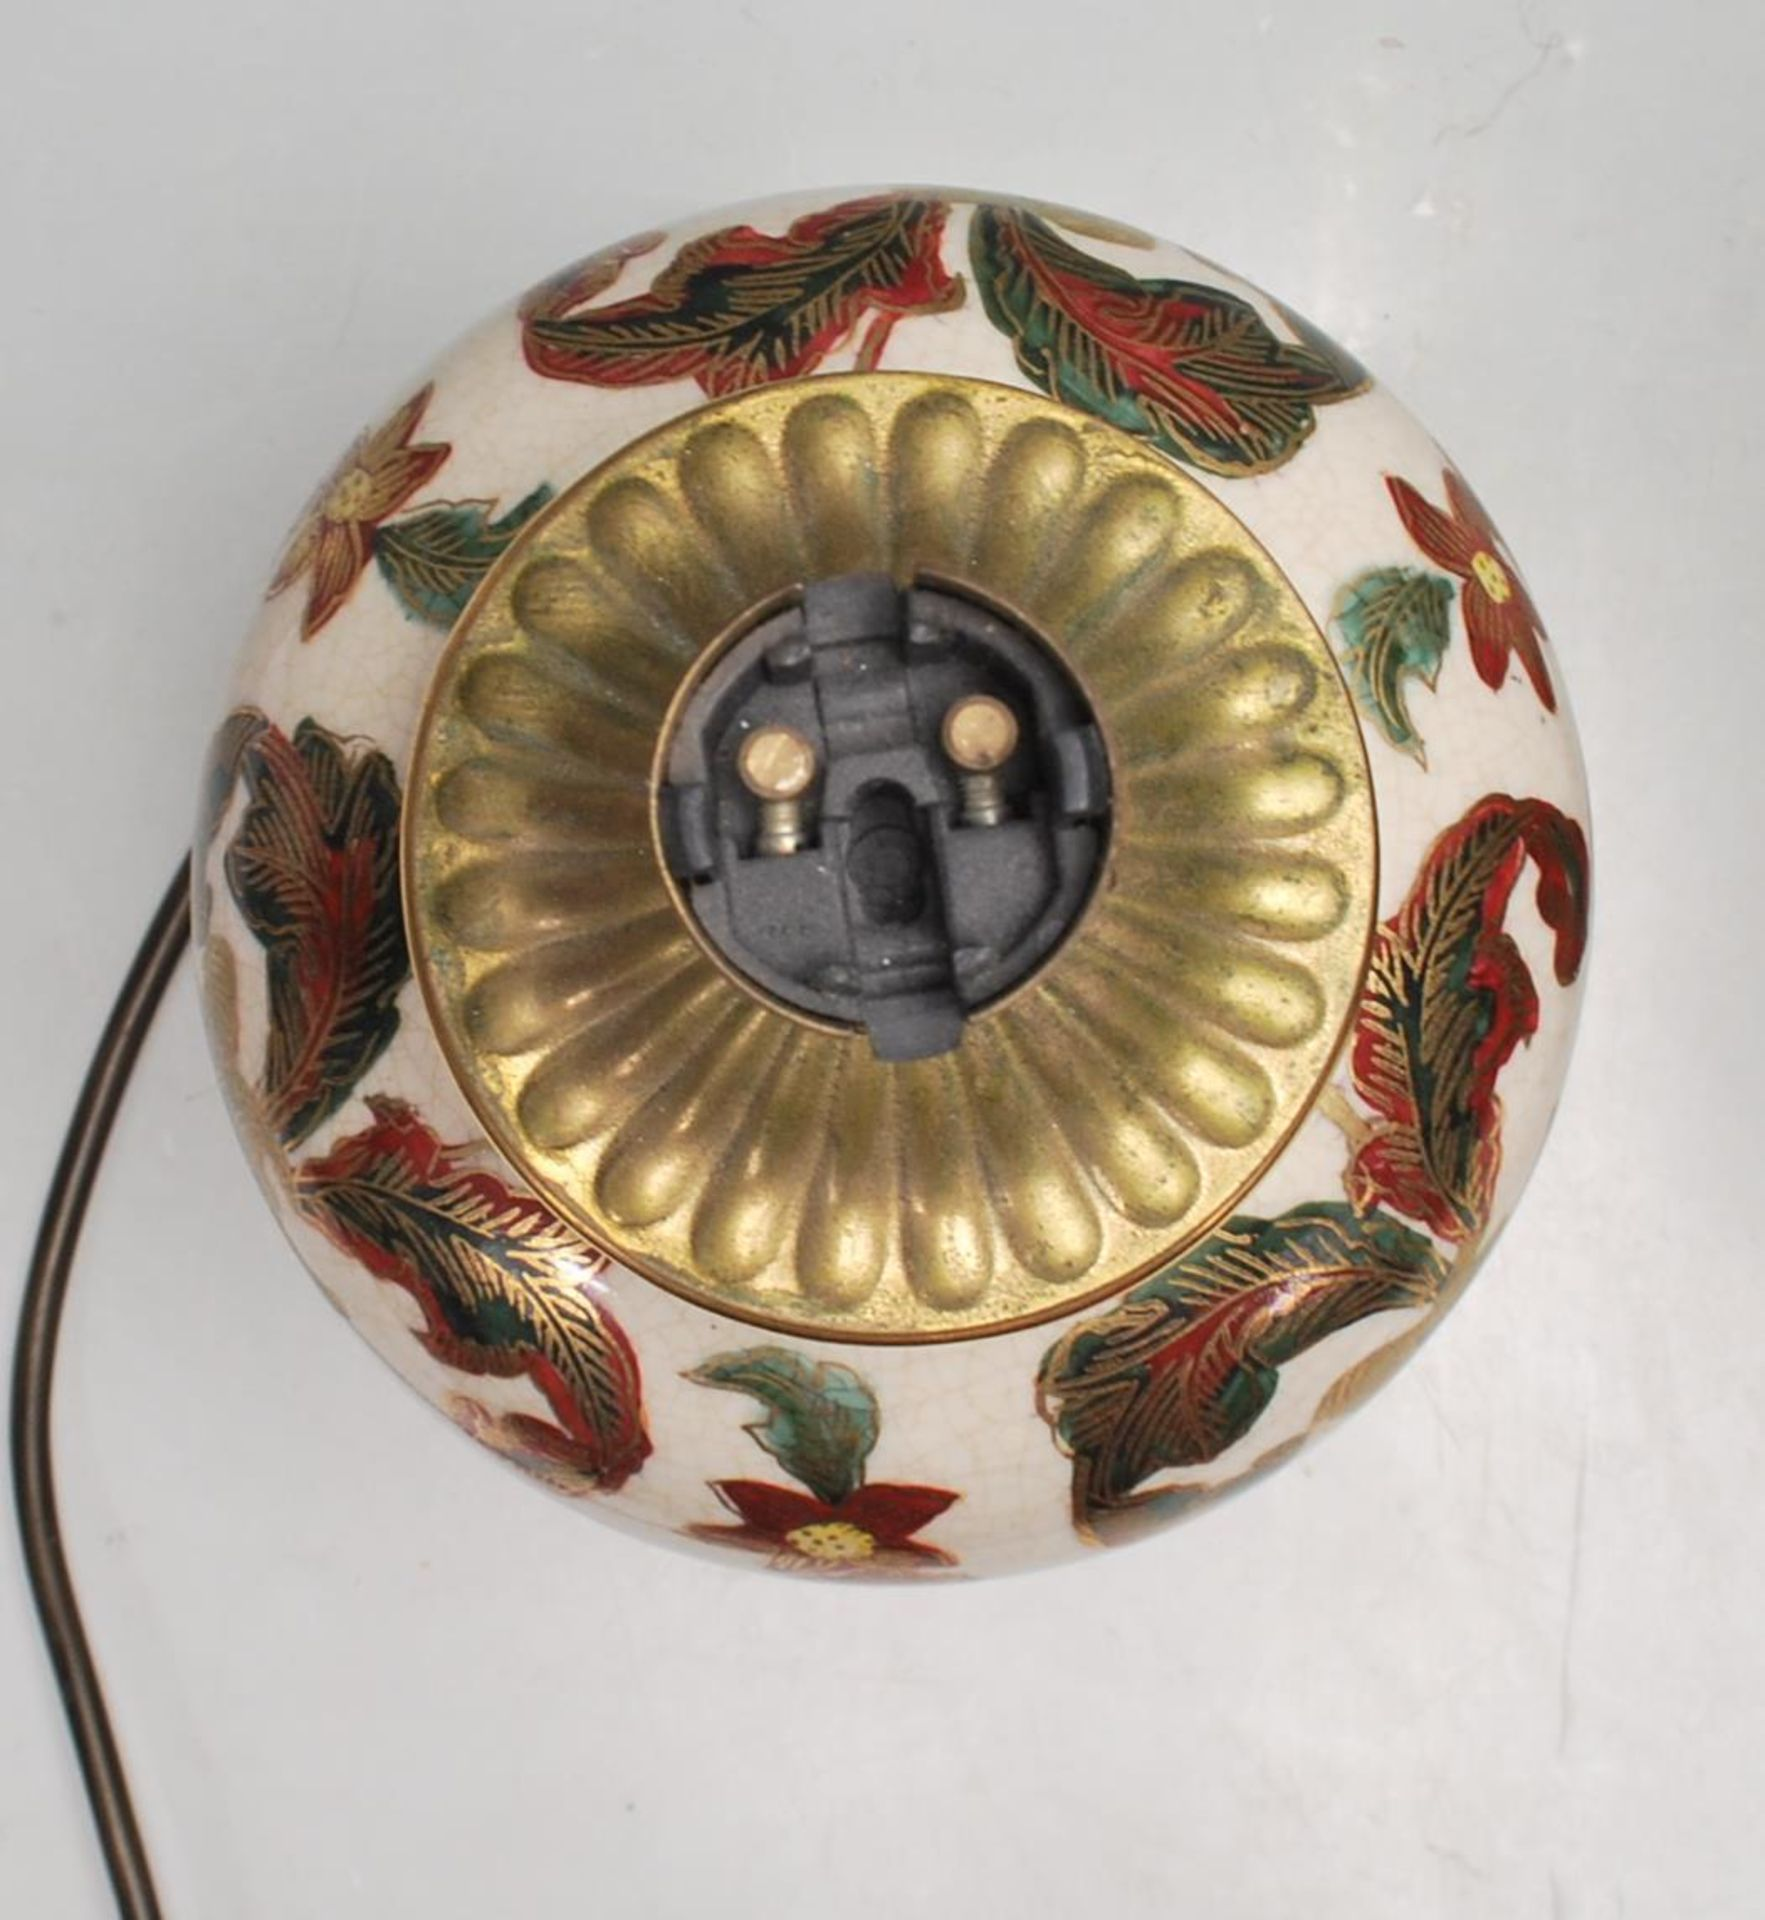 COLLECTION OF KUTANI / FAMILLE ROSE TABLE LAMPS - Image 7 of 7